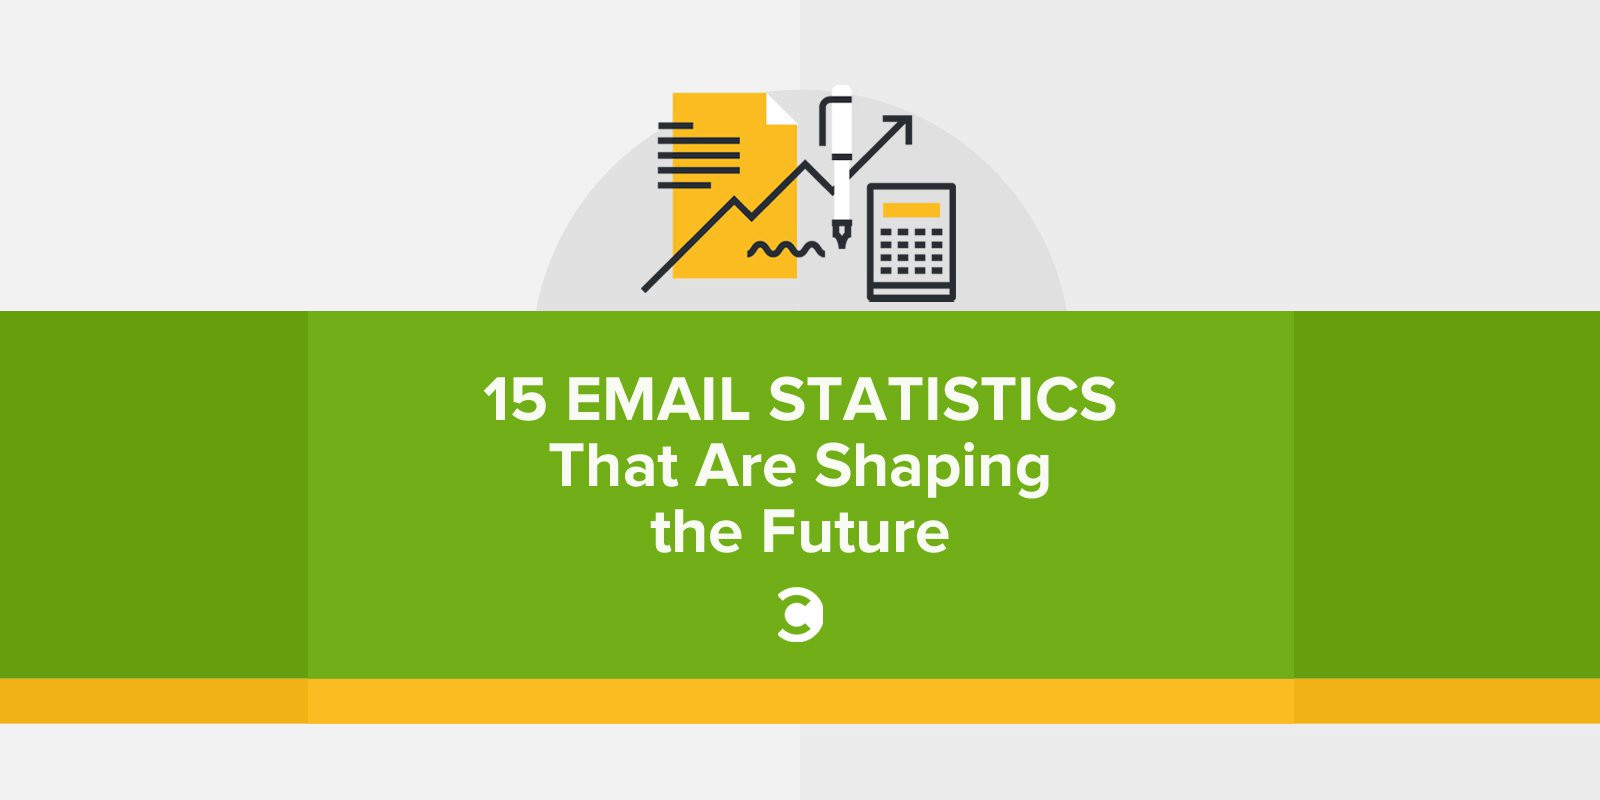 15 Email Statistics That Are Shaping the Future